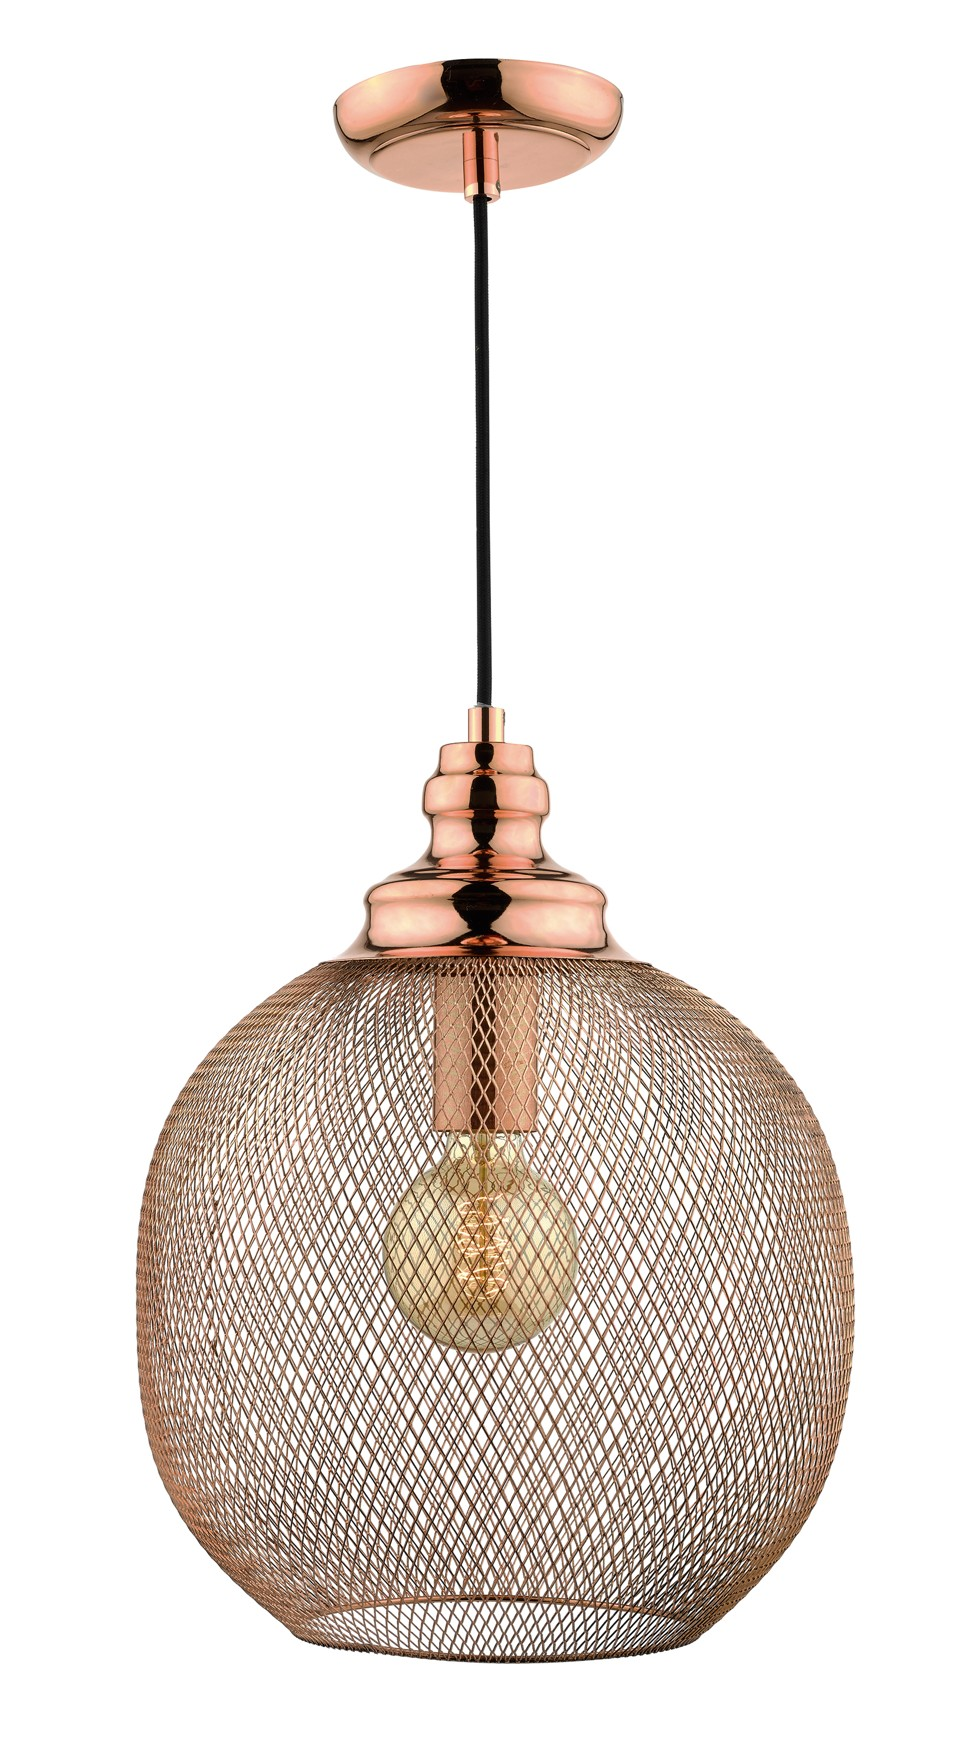 6 woven furniture pieces to add accents to your home style the woven copper metal wire forms a sphere shaped lamp shade which adds a sleek and contemporary silhouette to any interior price on request keyboard keysfo Image collections